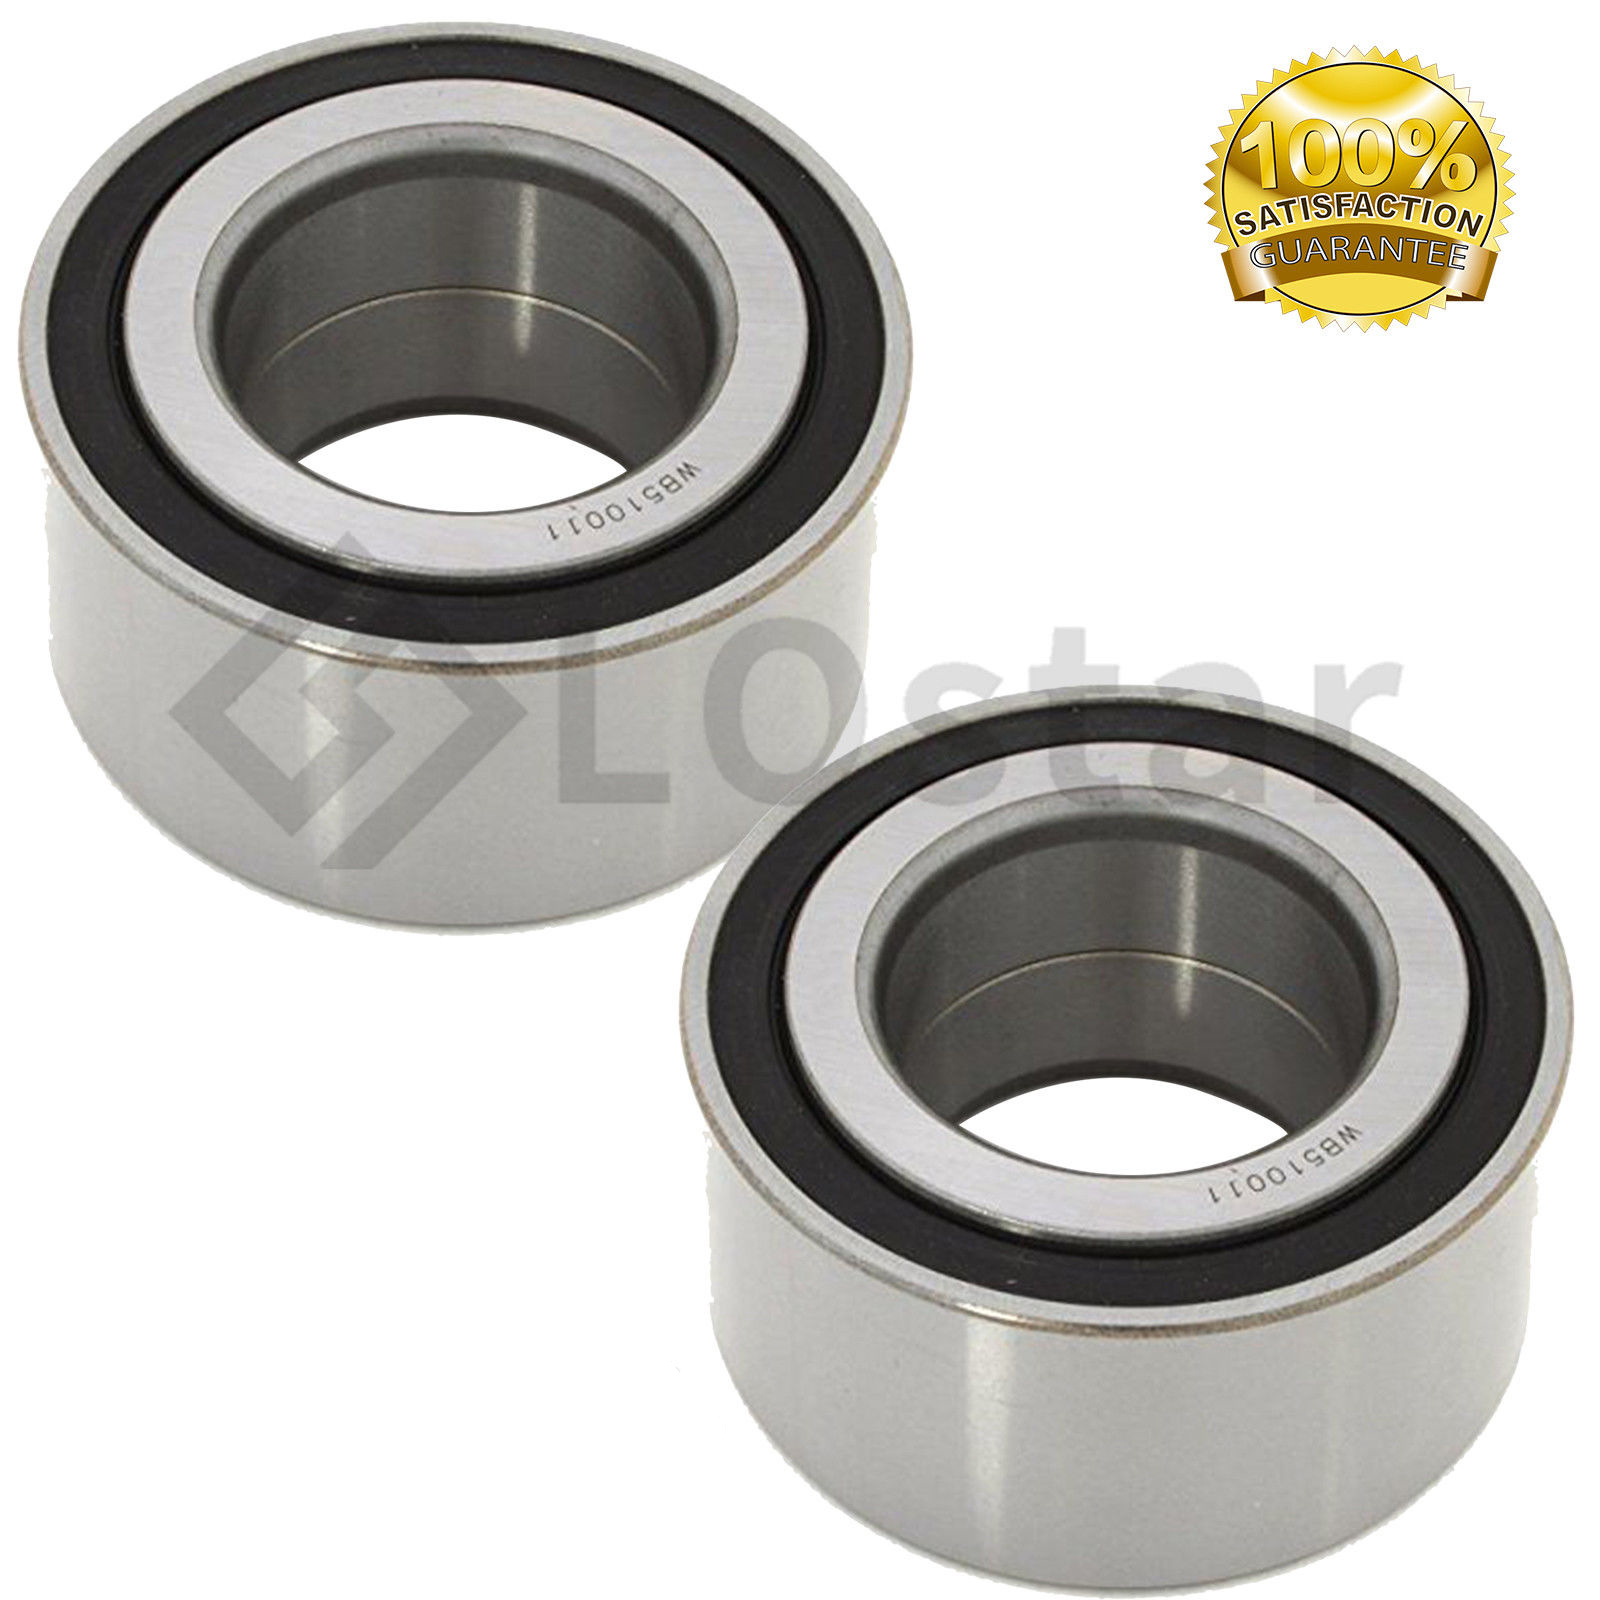 Pair(2) Front Wheel Hub Bearing Fits Acura Legend Mdx RL